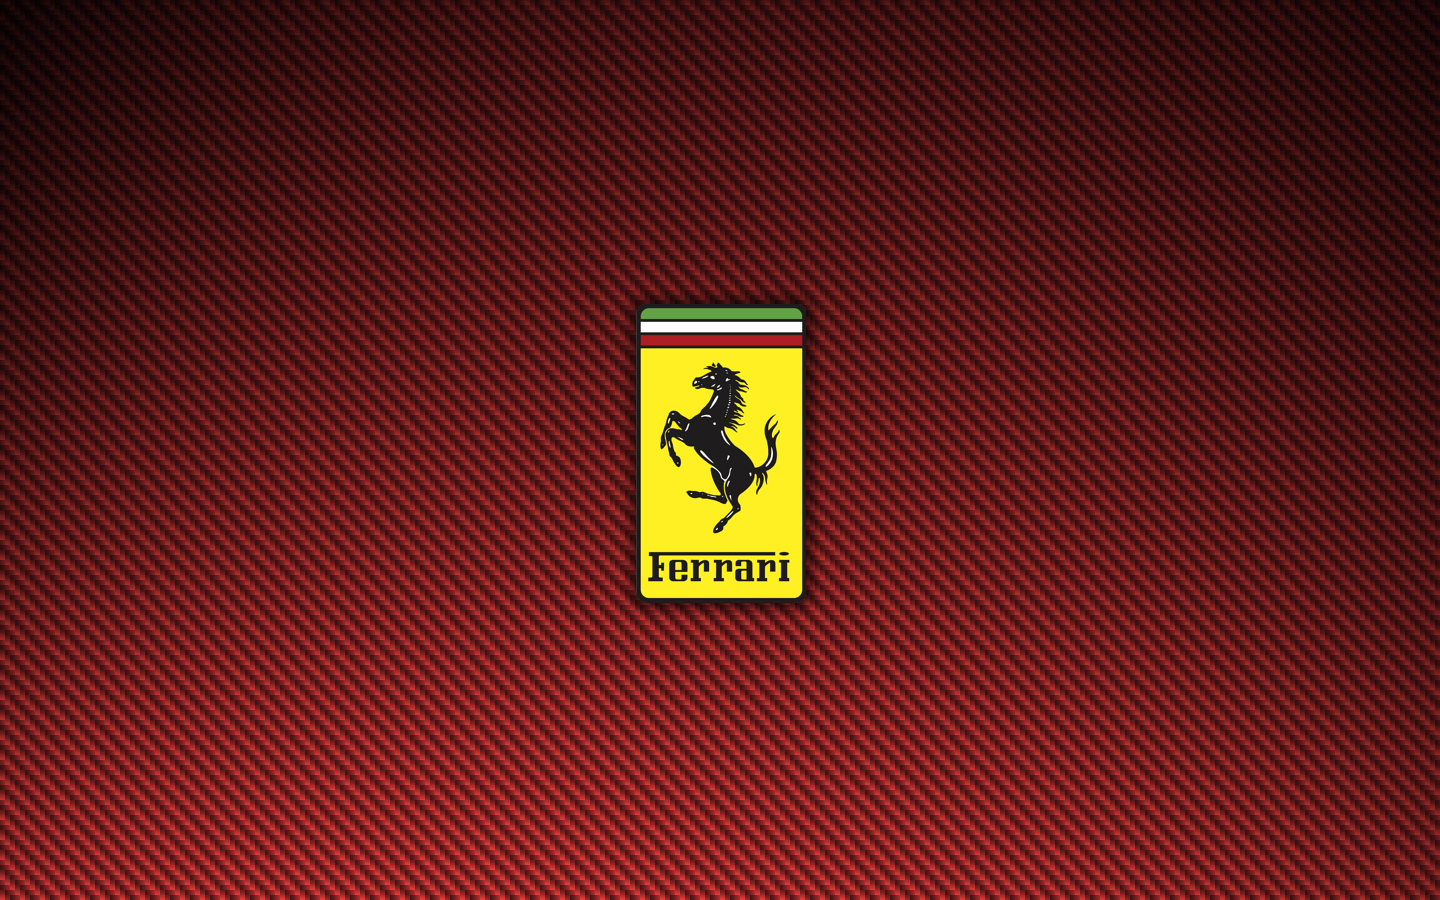 Ferrari Logo Red Carbon Fiber Wallpapers 1440×900